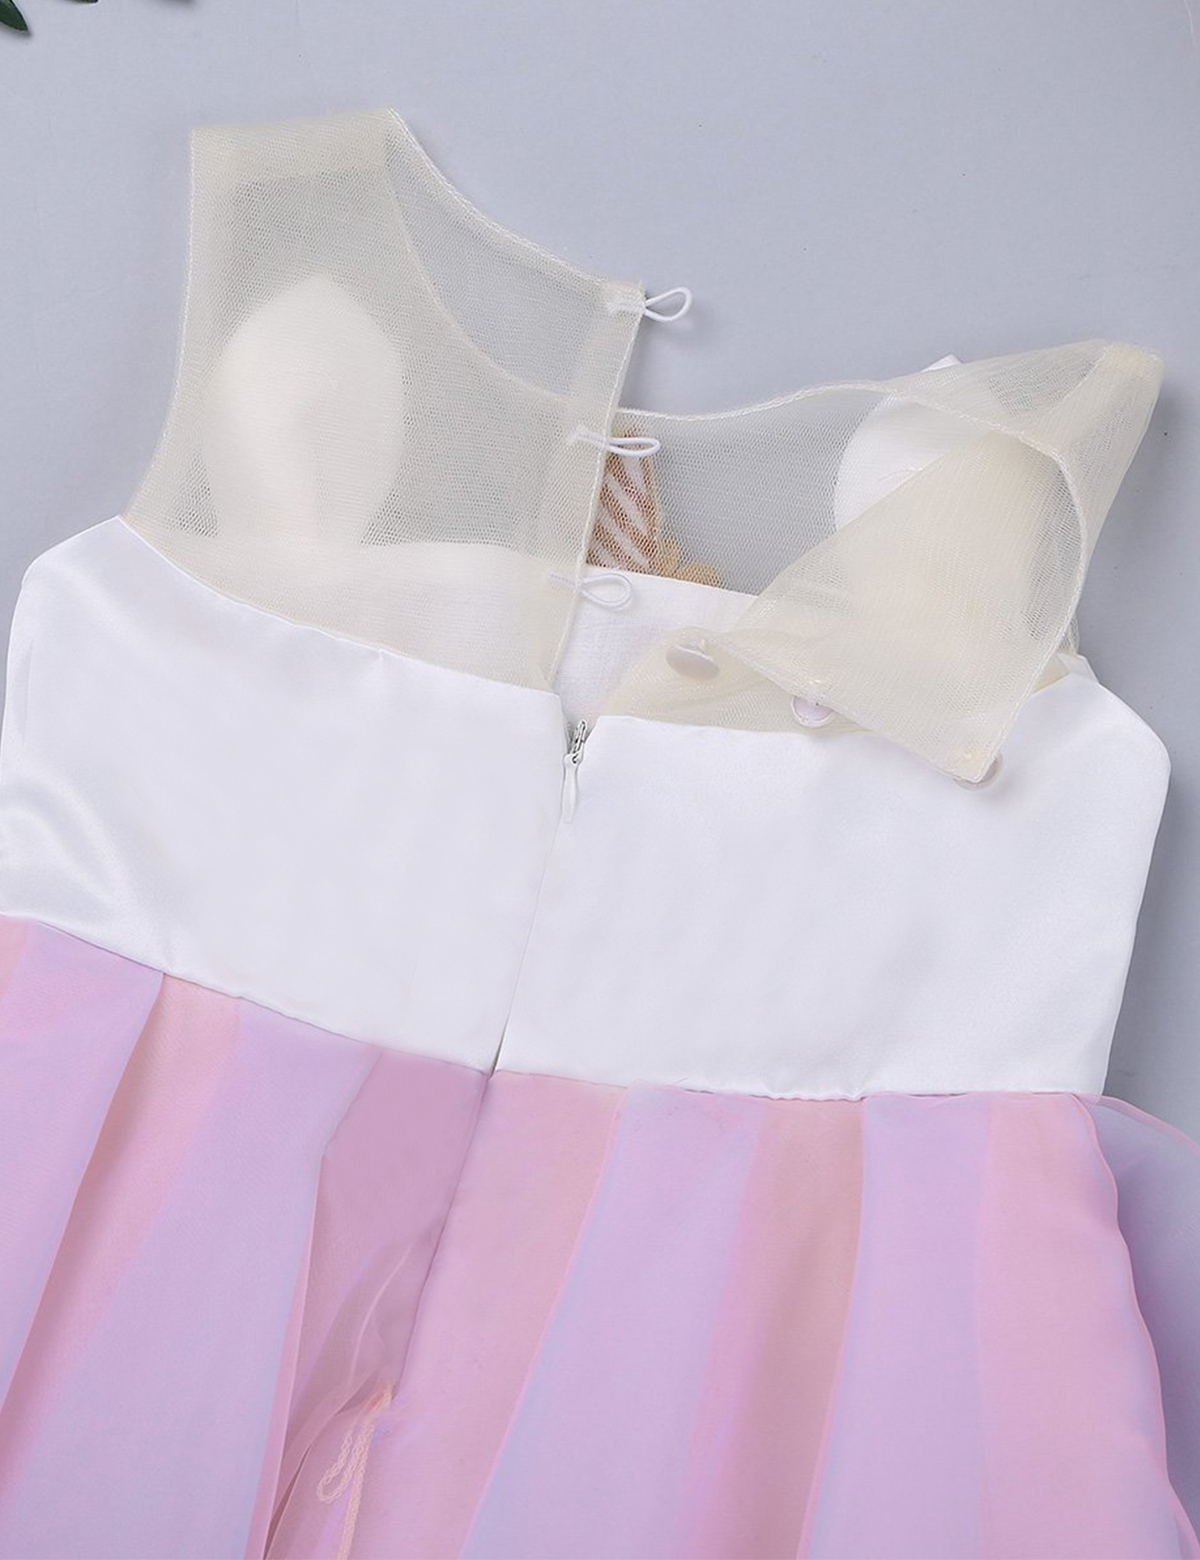 TTYAOVO Kids Unicorn Costume Dress Girl Princess Flower Pageant Party Tutu Dresses Size 5-6 Years Pink by TTYAOVO (Image #5)